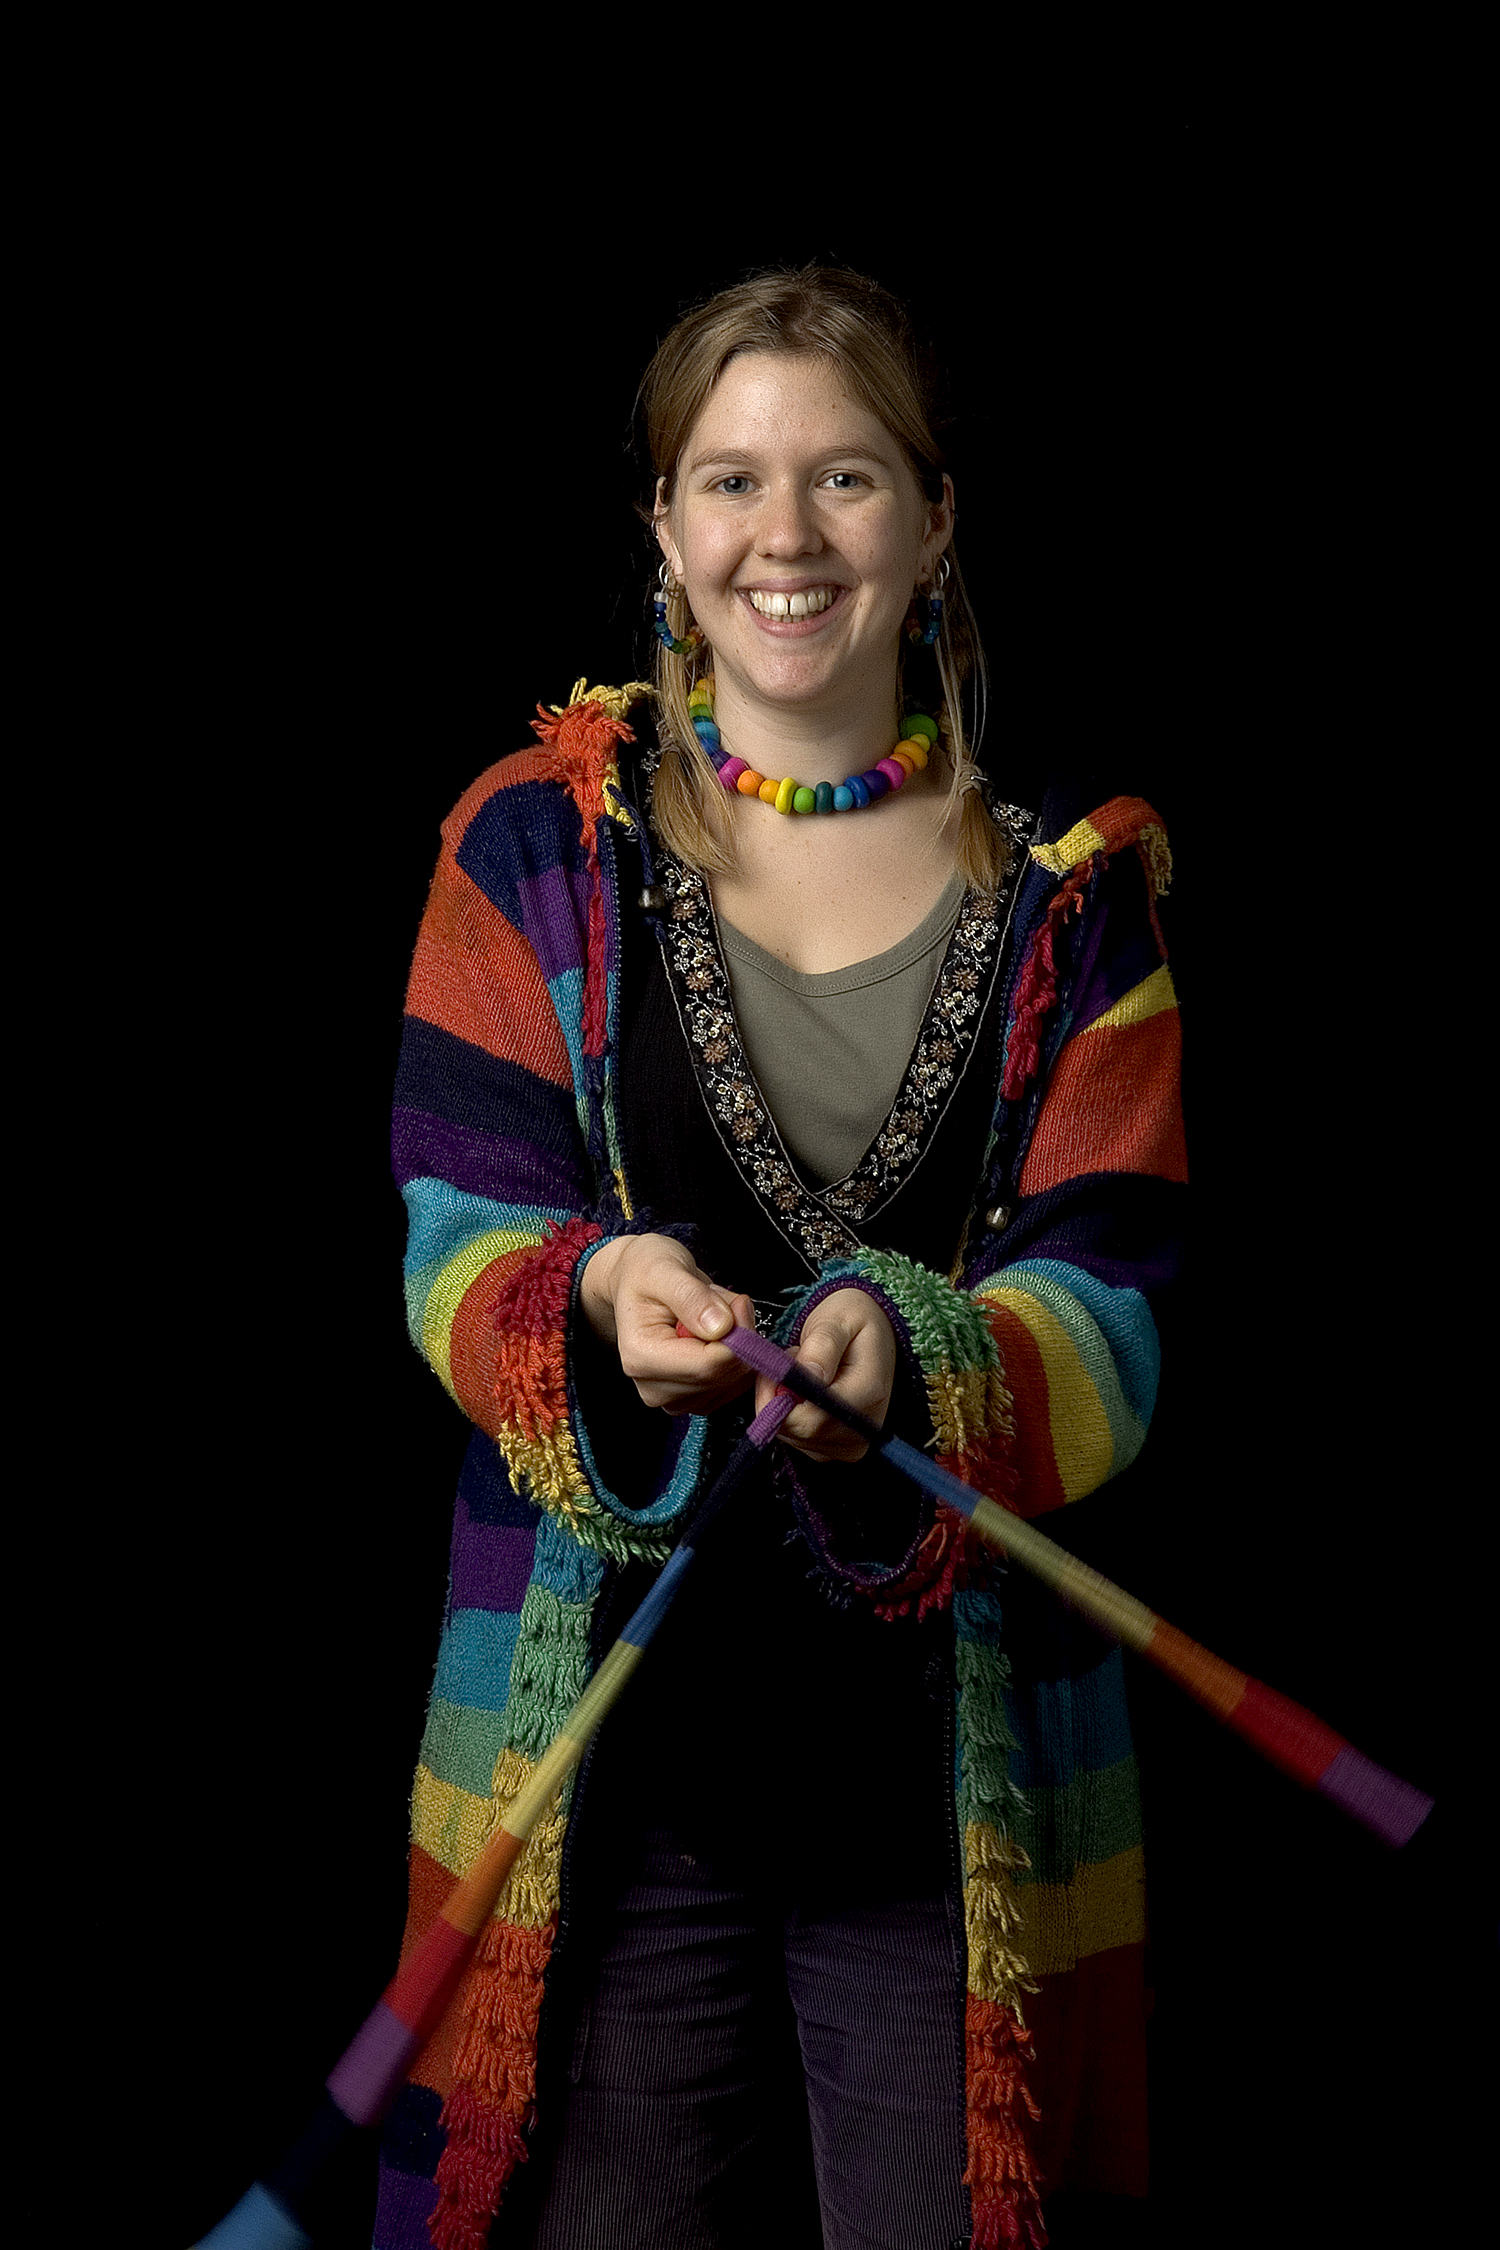 Juggler, National Centre for Circus Arts, London. Portrait by Anthony OliverJuggler, National Centre for Circus Arts, London. Portrait by Anthony Oliver